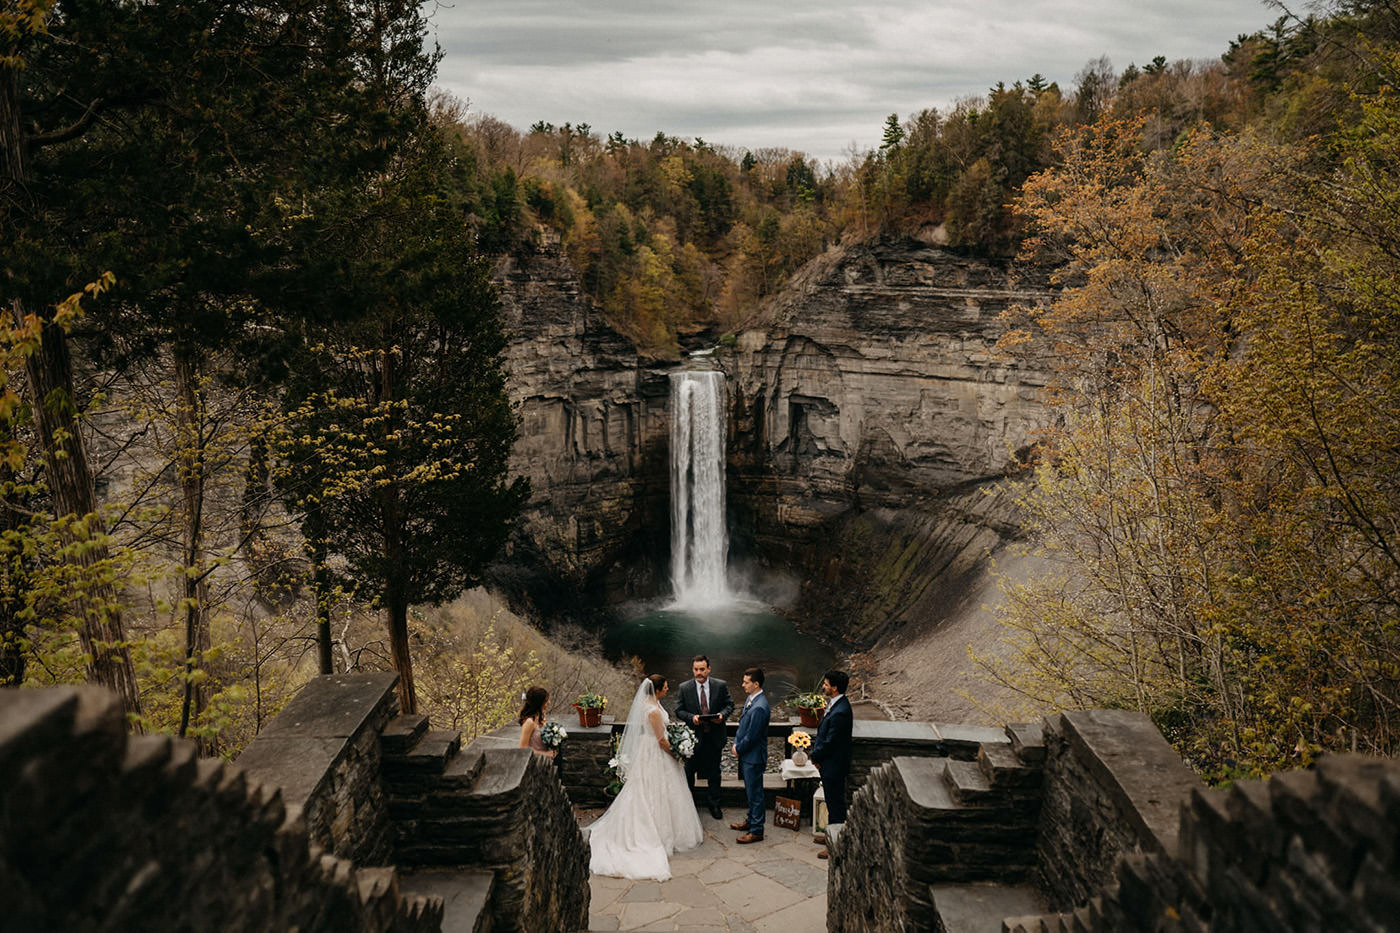 A wedding ceremony is taking place at a waterfall in the mountains